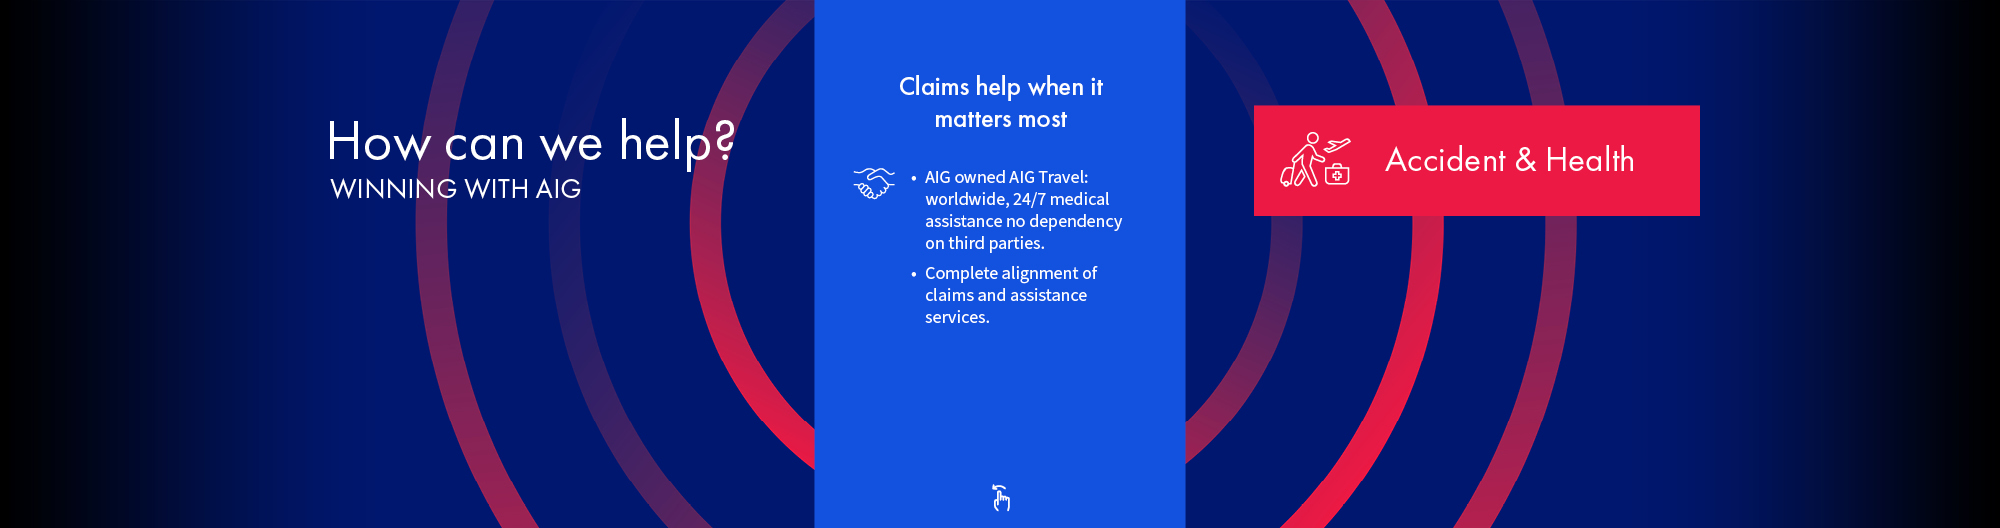 Accident & Health/Travel Claims